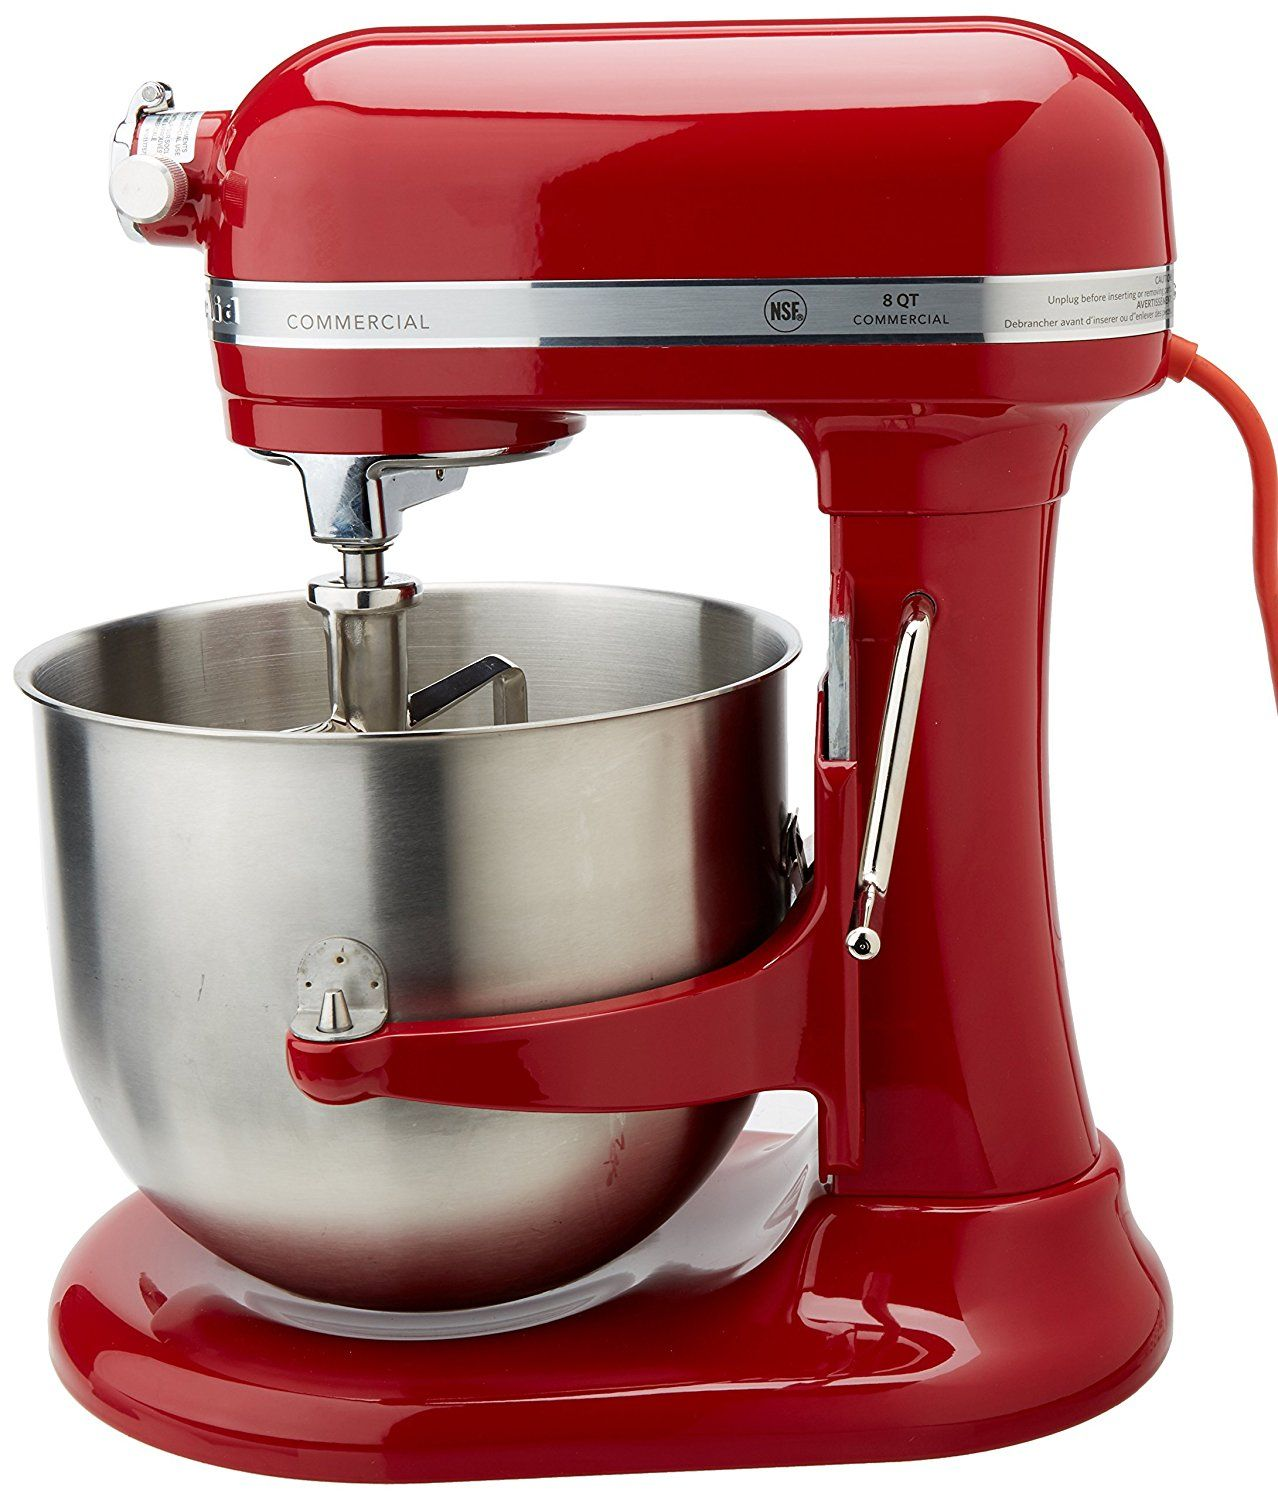 Check Out This Gorgeious Empire Red Commercial Mixer From KitchenAid. The  Bowl Holds 8